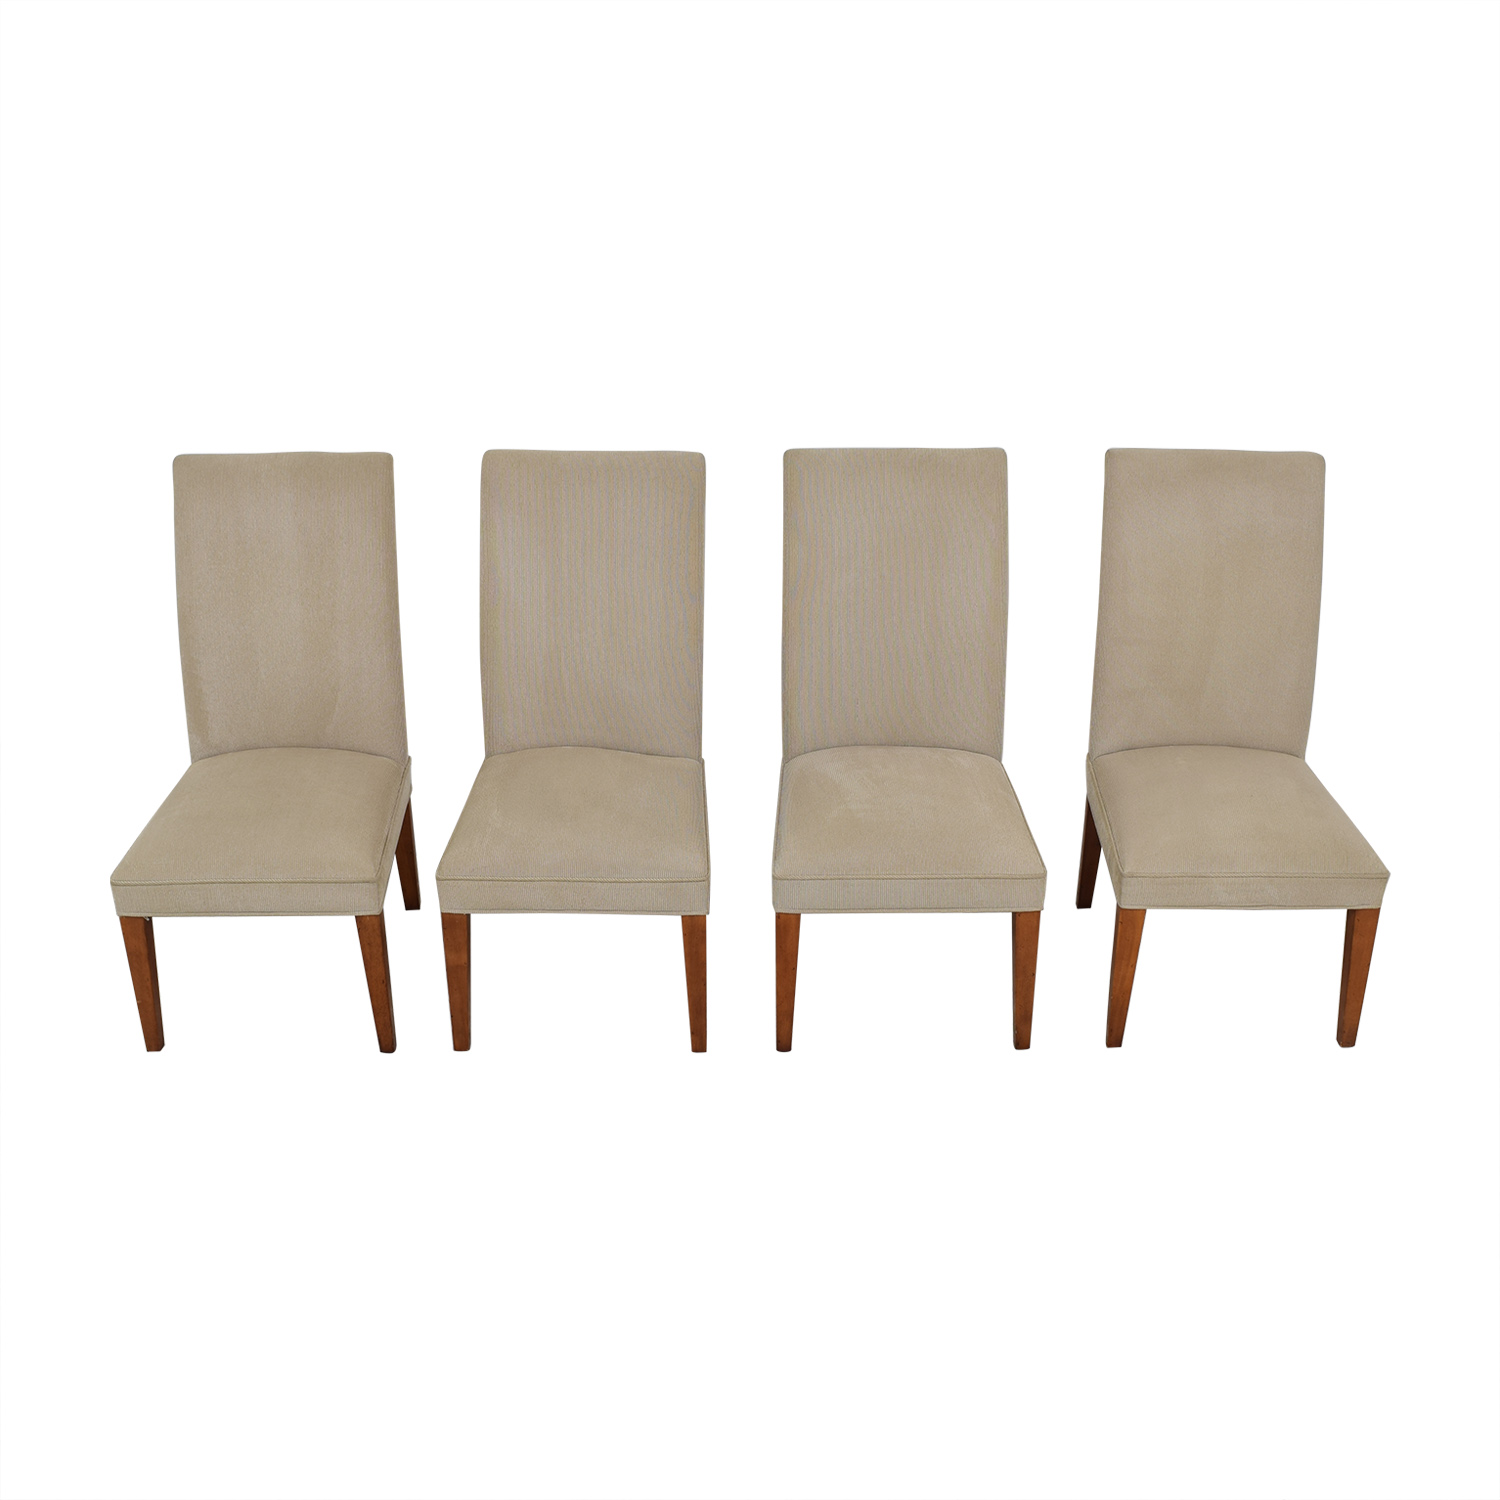 Restoration Hardware Hudson Parsons Chairs / Dining Chairs